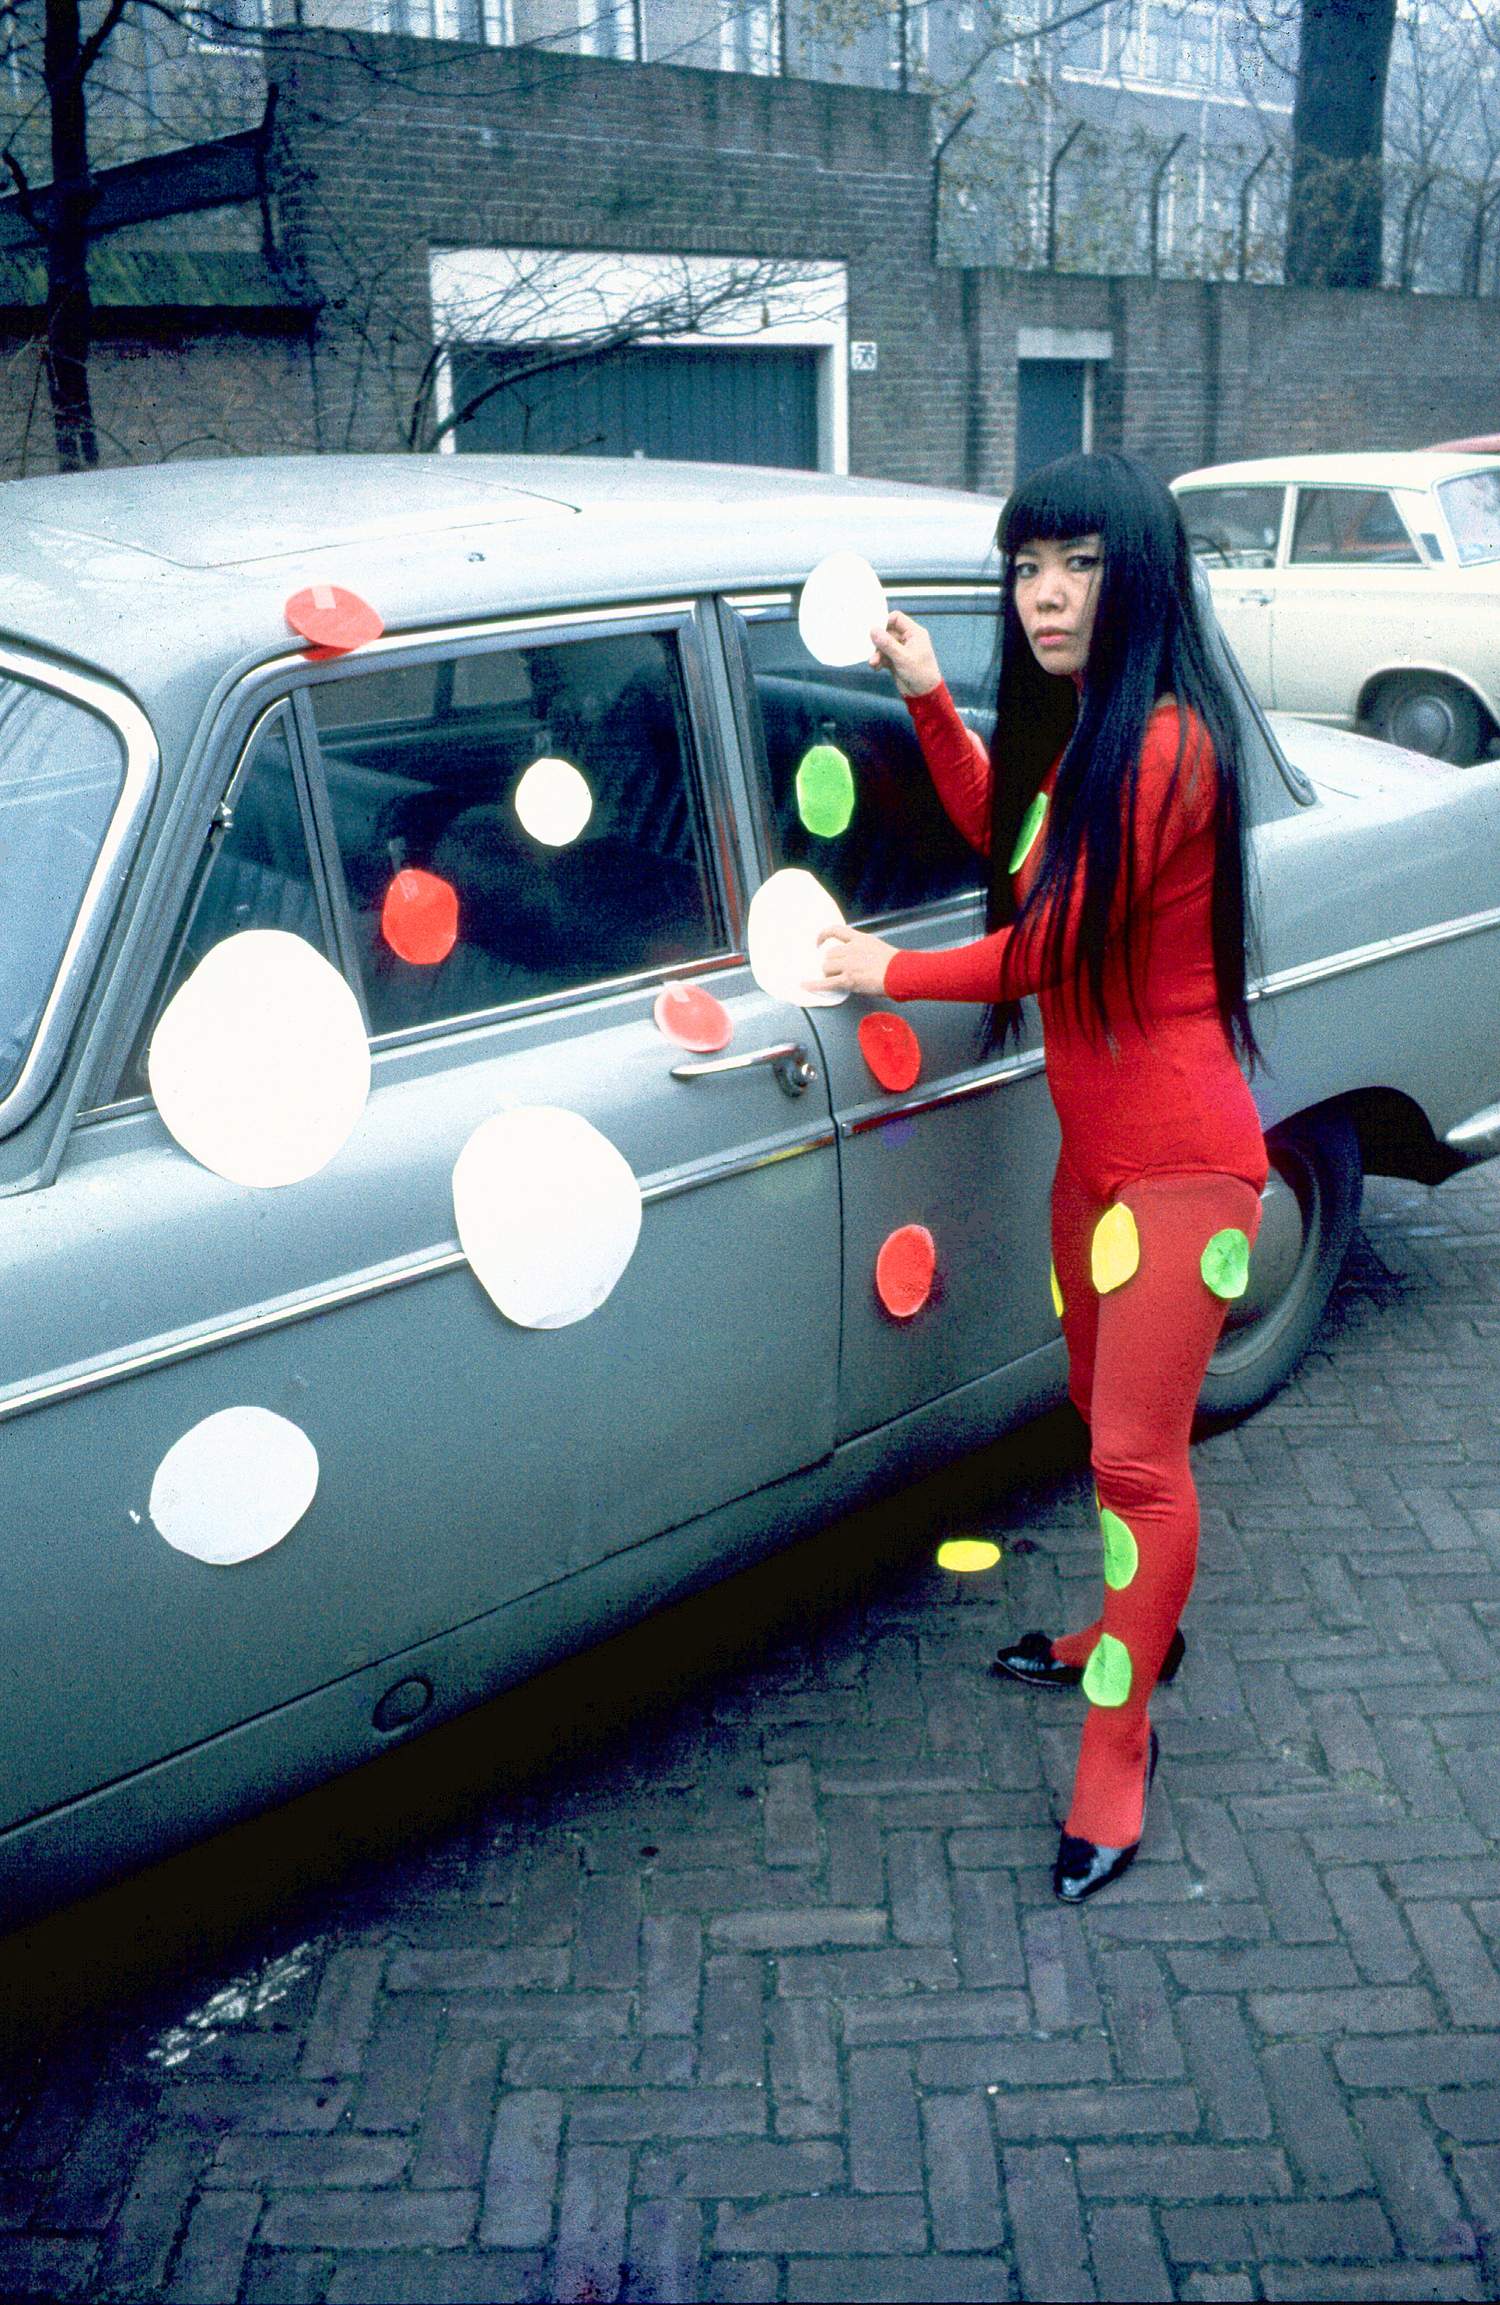 960px version of Kusama-Car.jpg